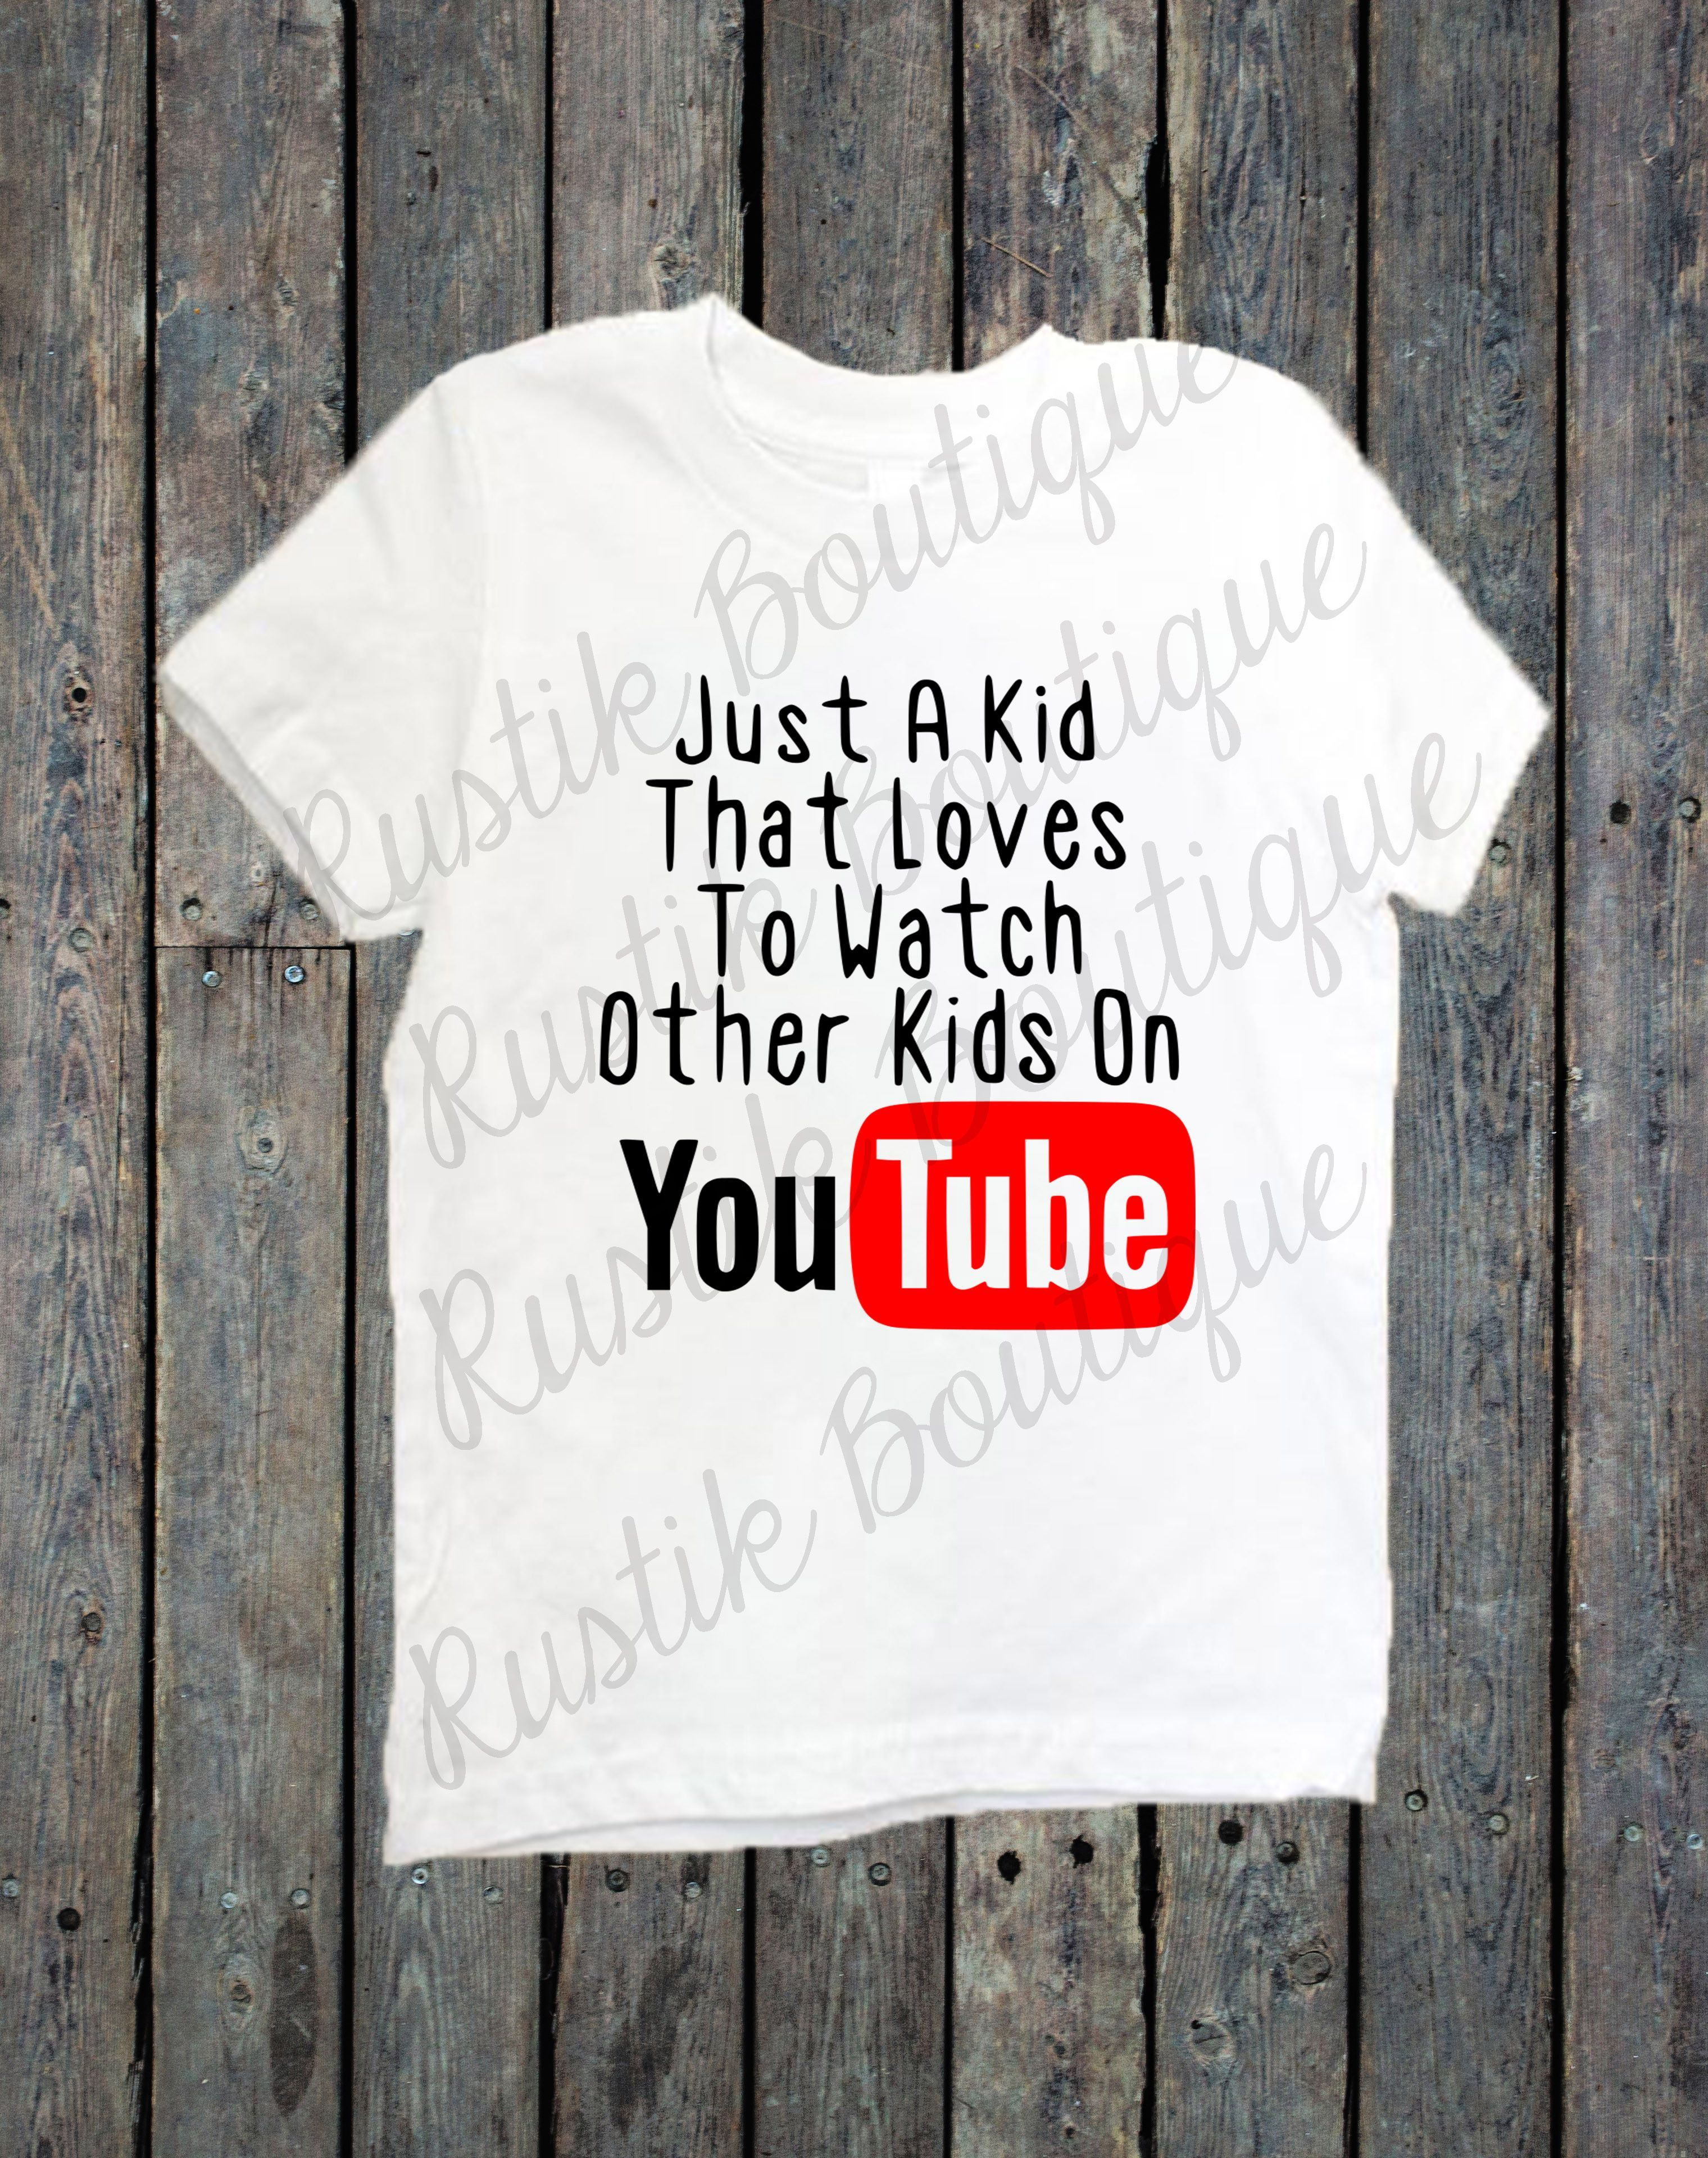 Just a kid that loves watching other kids on YOUTUBE shirt ...